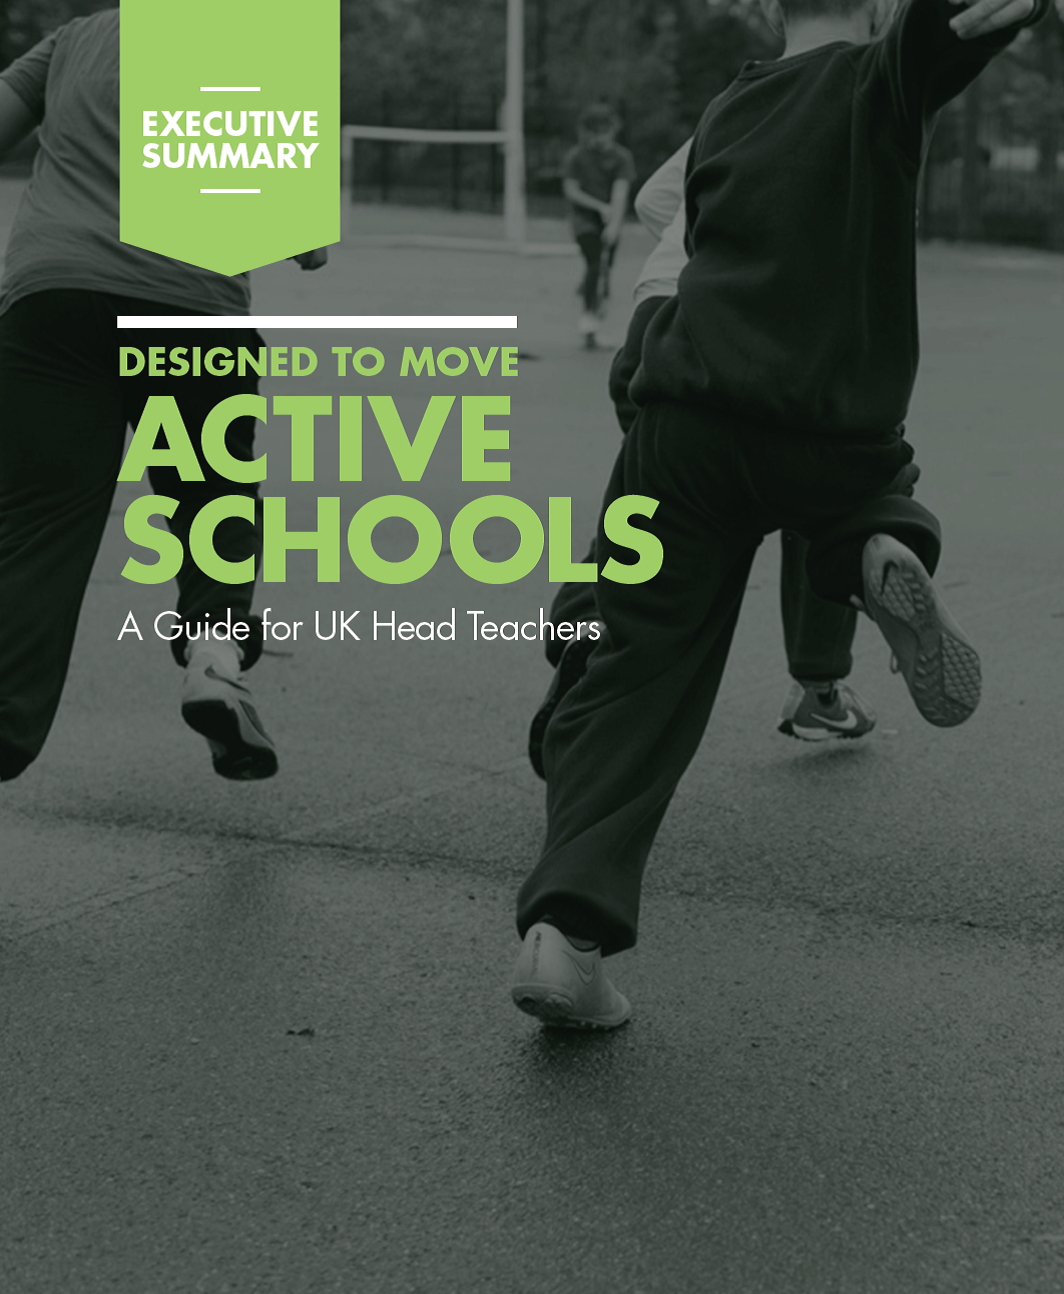 Nike Designed to Move - ACTIVE SCHOOLS - Guide